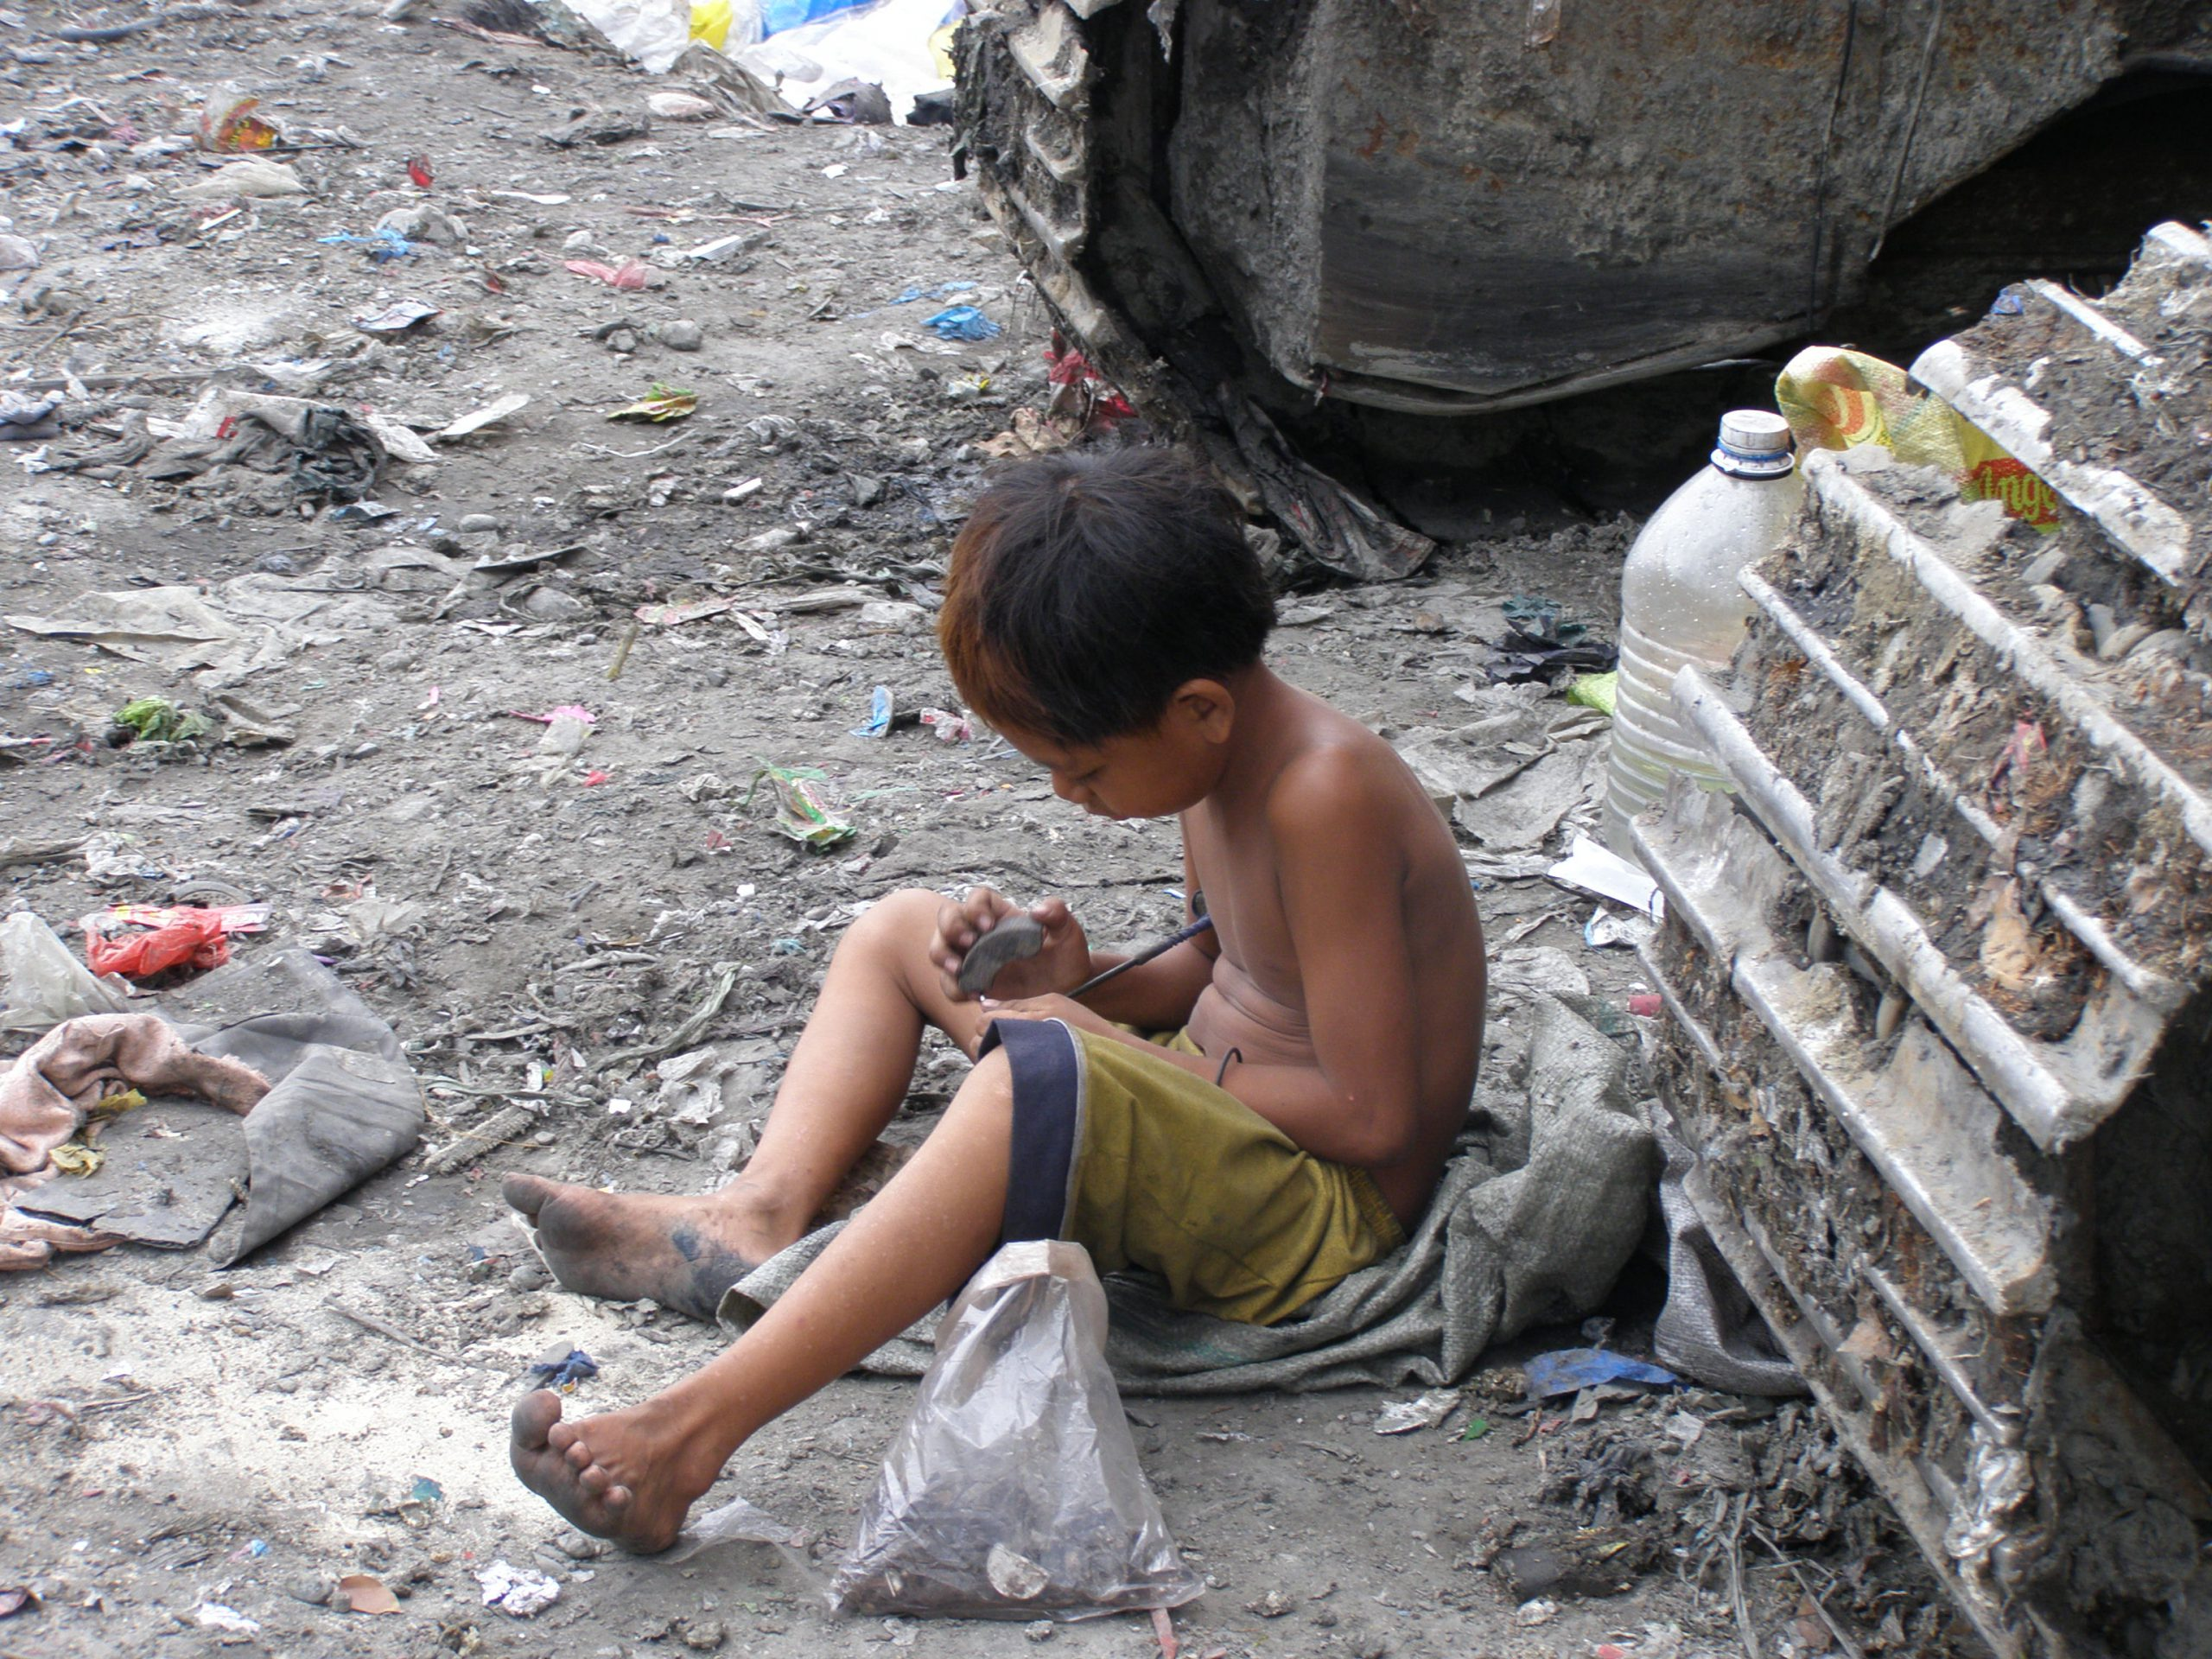 A child in need